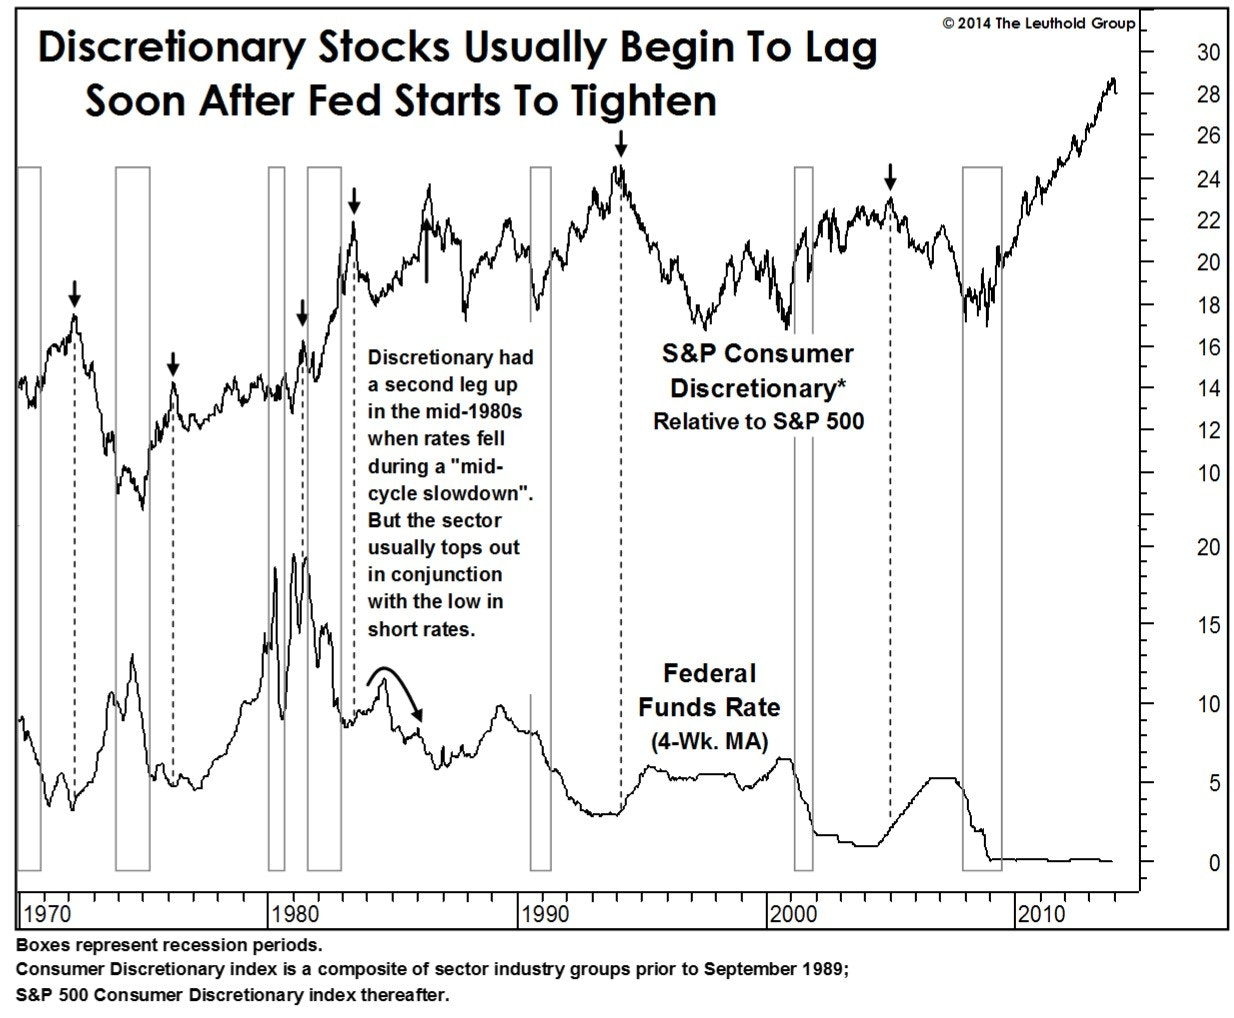 Leuthold - Consumer Discretionary: End Of The Run?